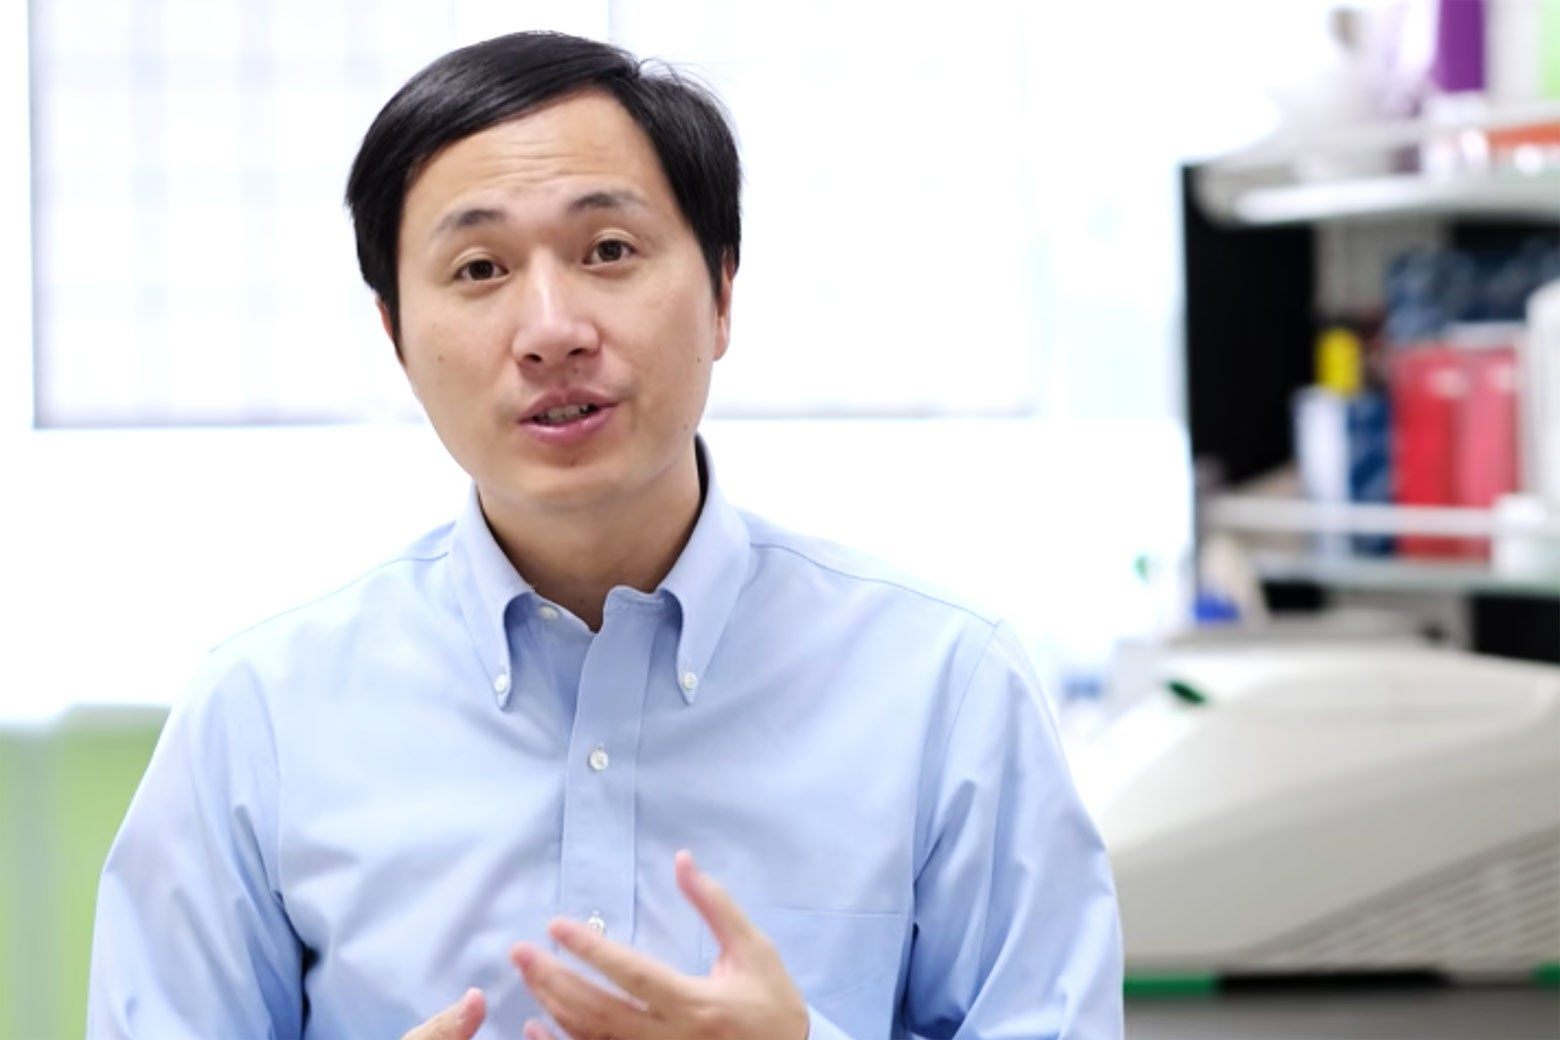 Screen grab of He Jiankui video.